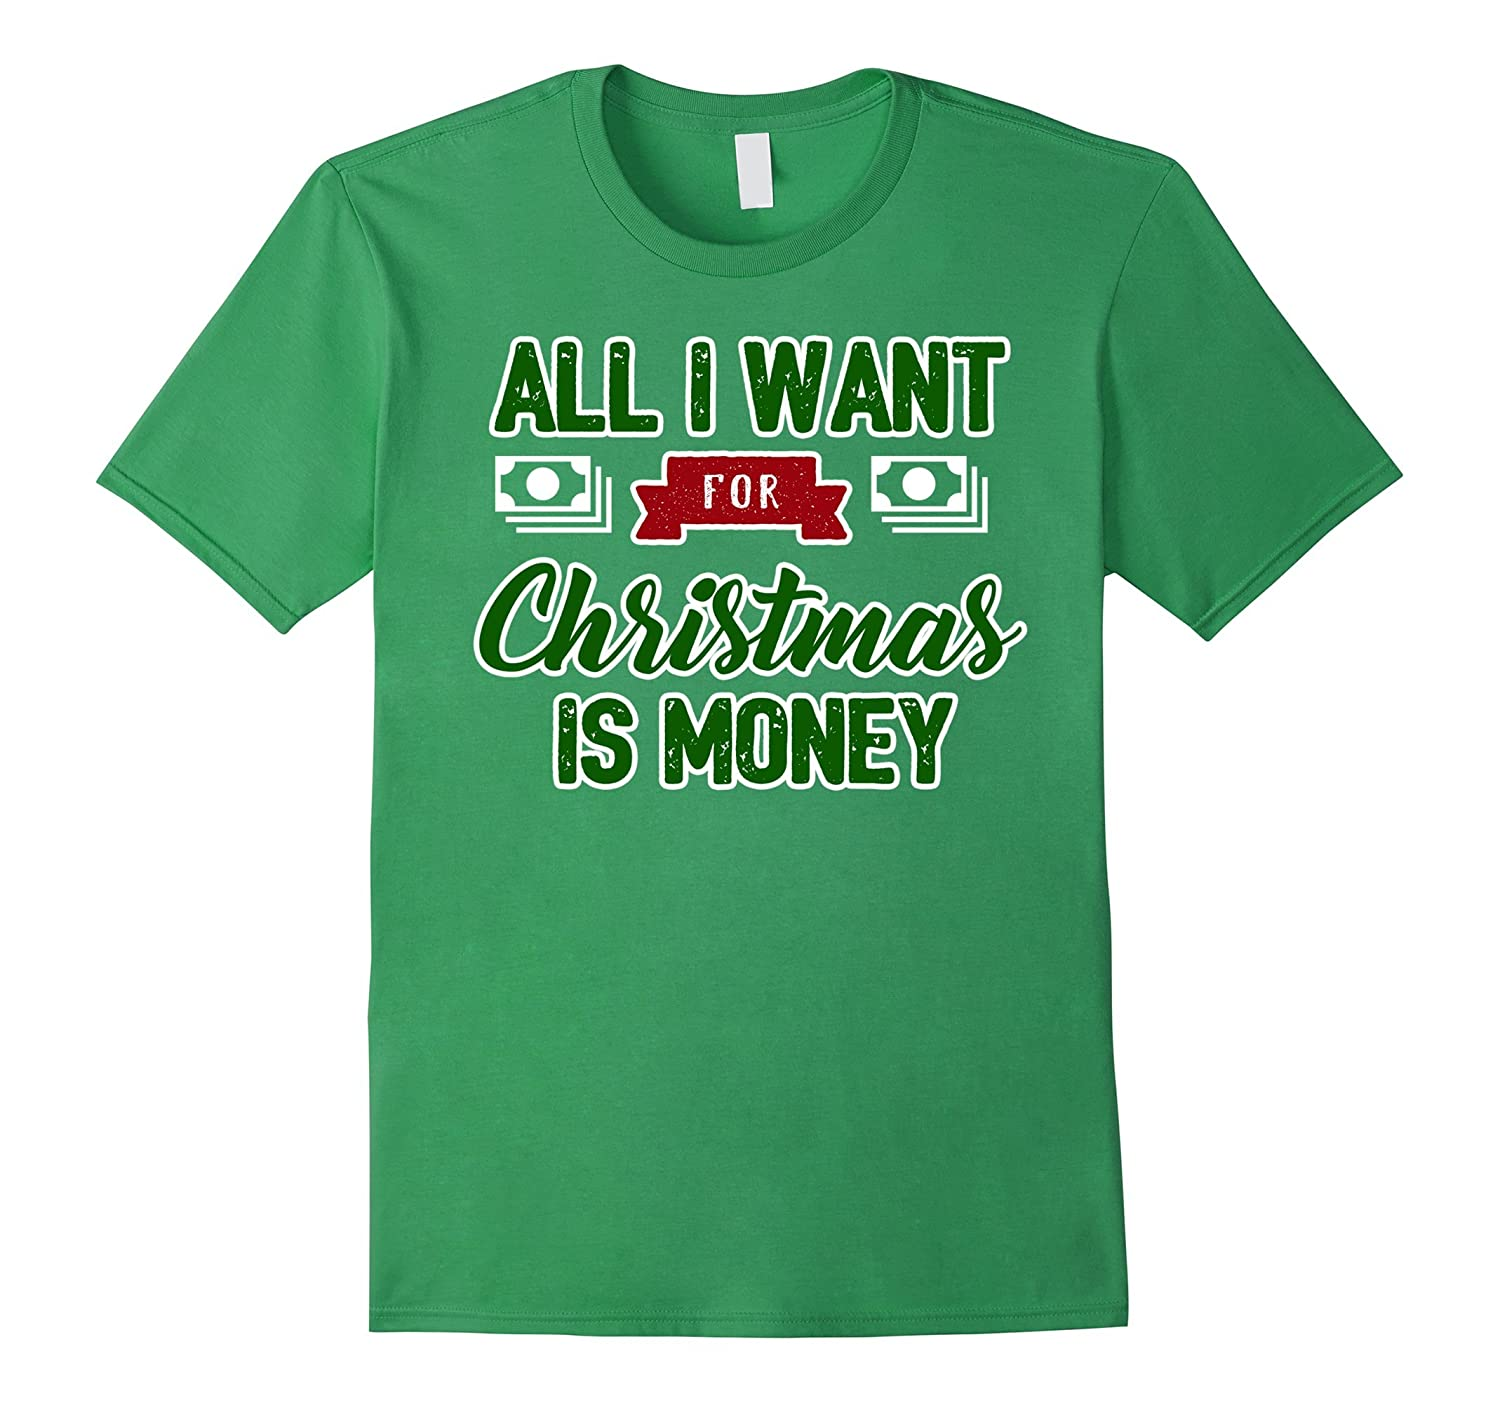 All I Want For Christmas Is a Money Cash Gift Card Shirt-FL